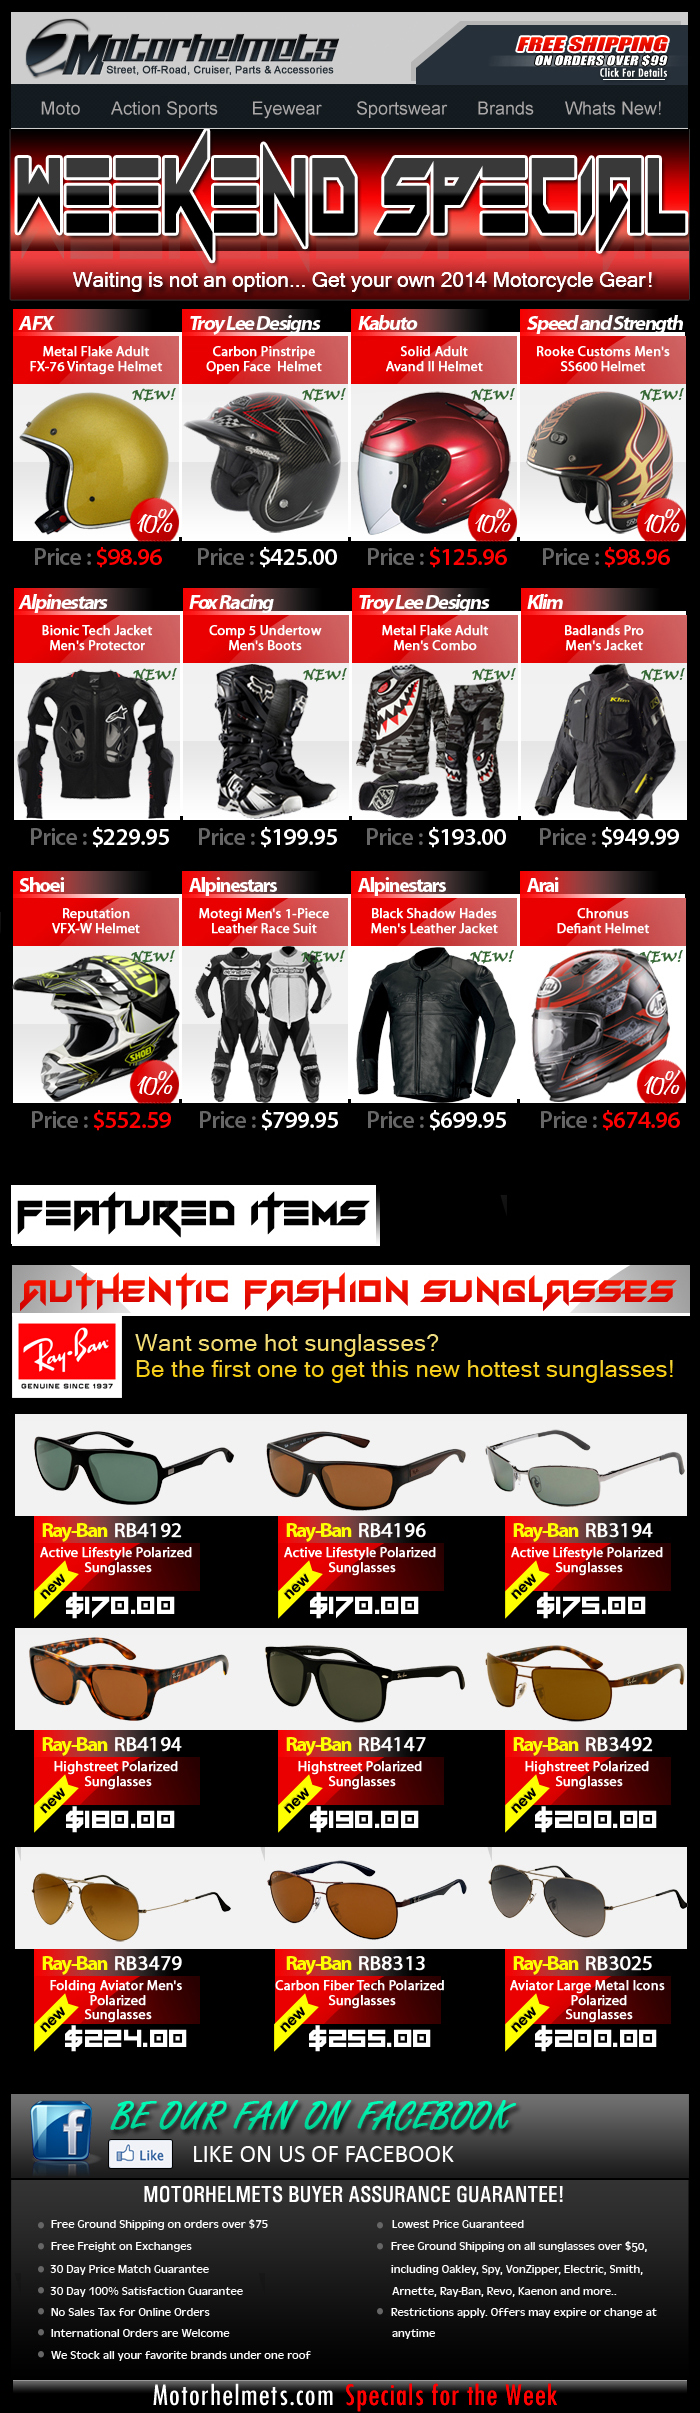 Now Available..2014 Gear and Apparel from Fox, Shoei, A-Stars and more!